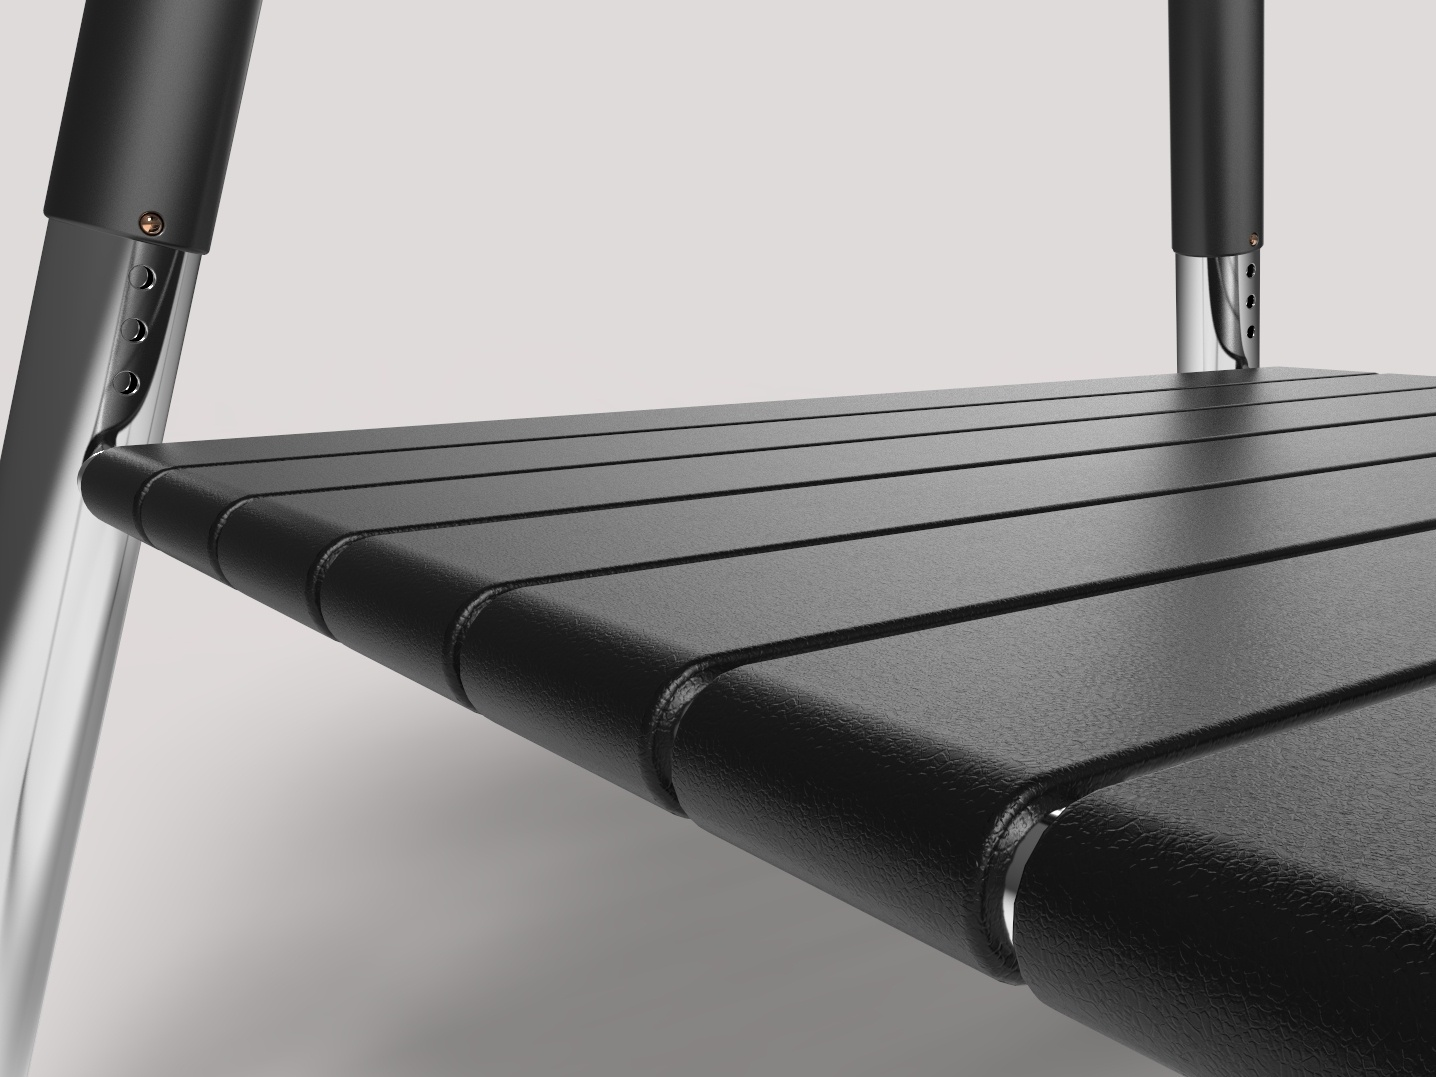 Able design ux rhino industrial design disability keyshot render close up product design